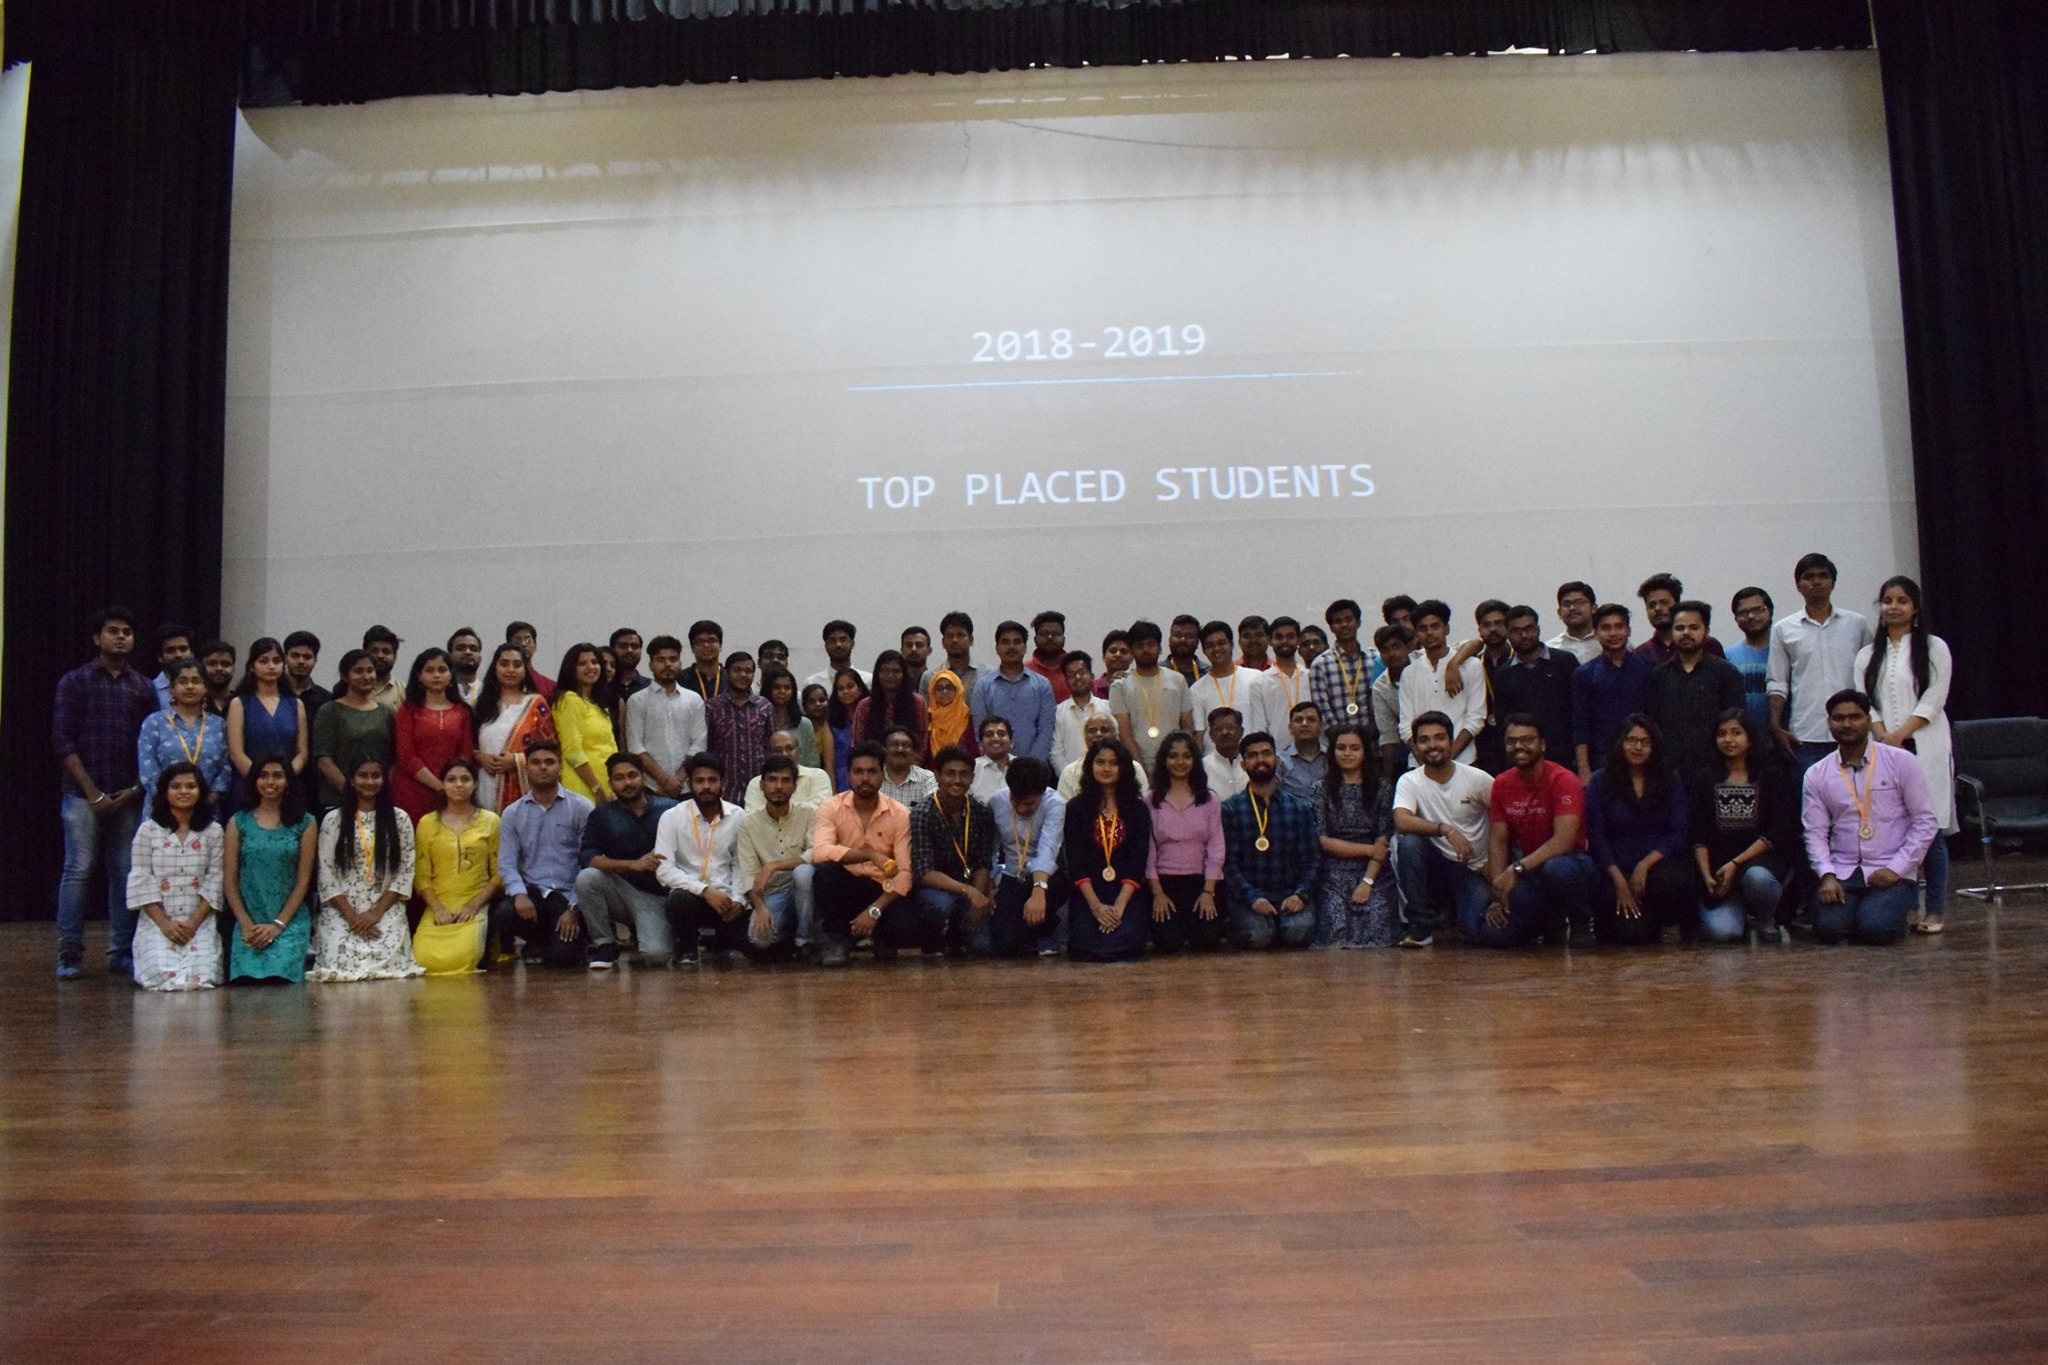 Top placed students of 2018-19 Batch being felicitated by the Director